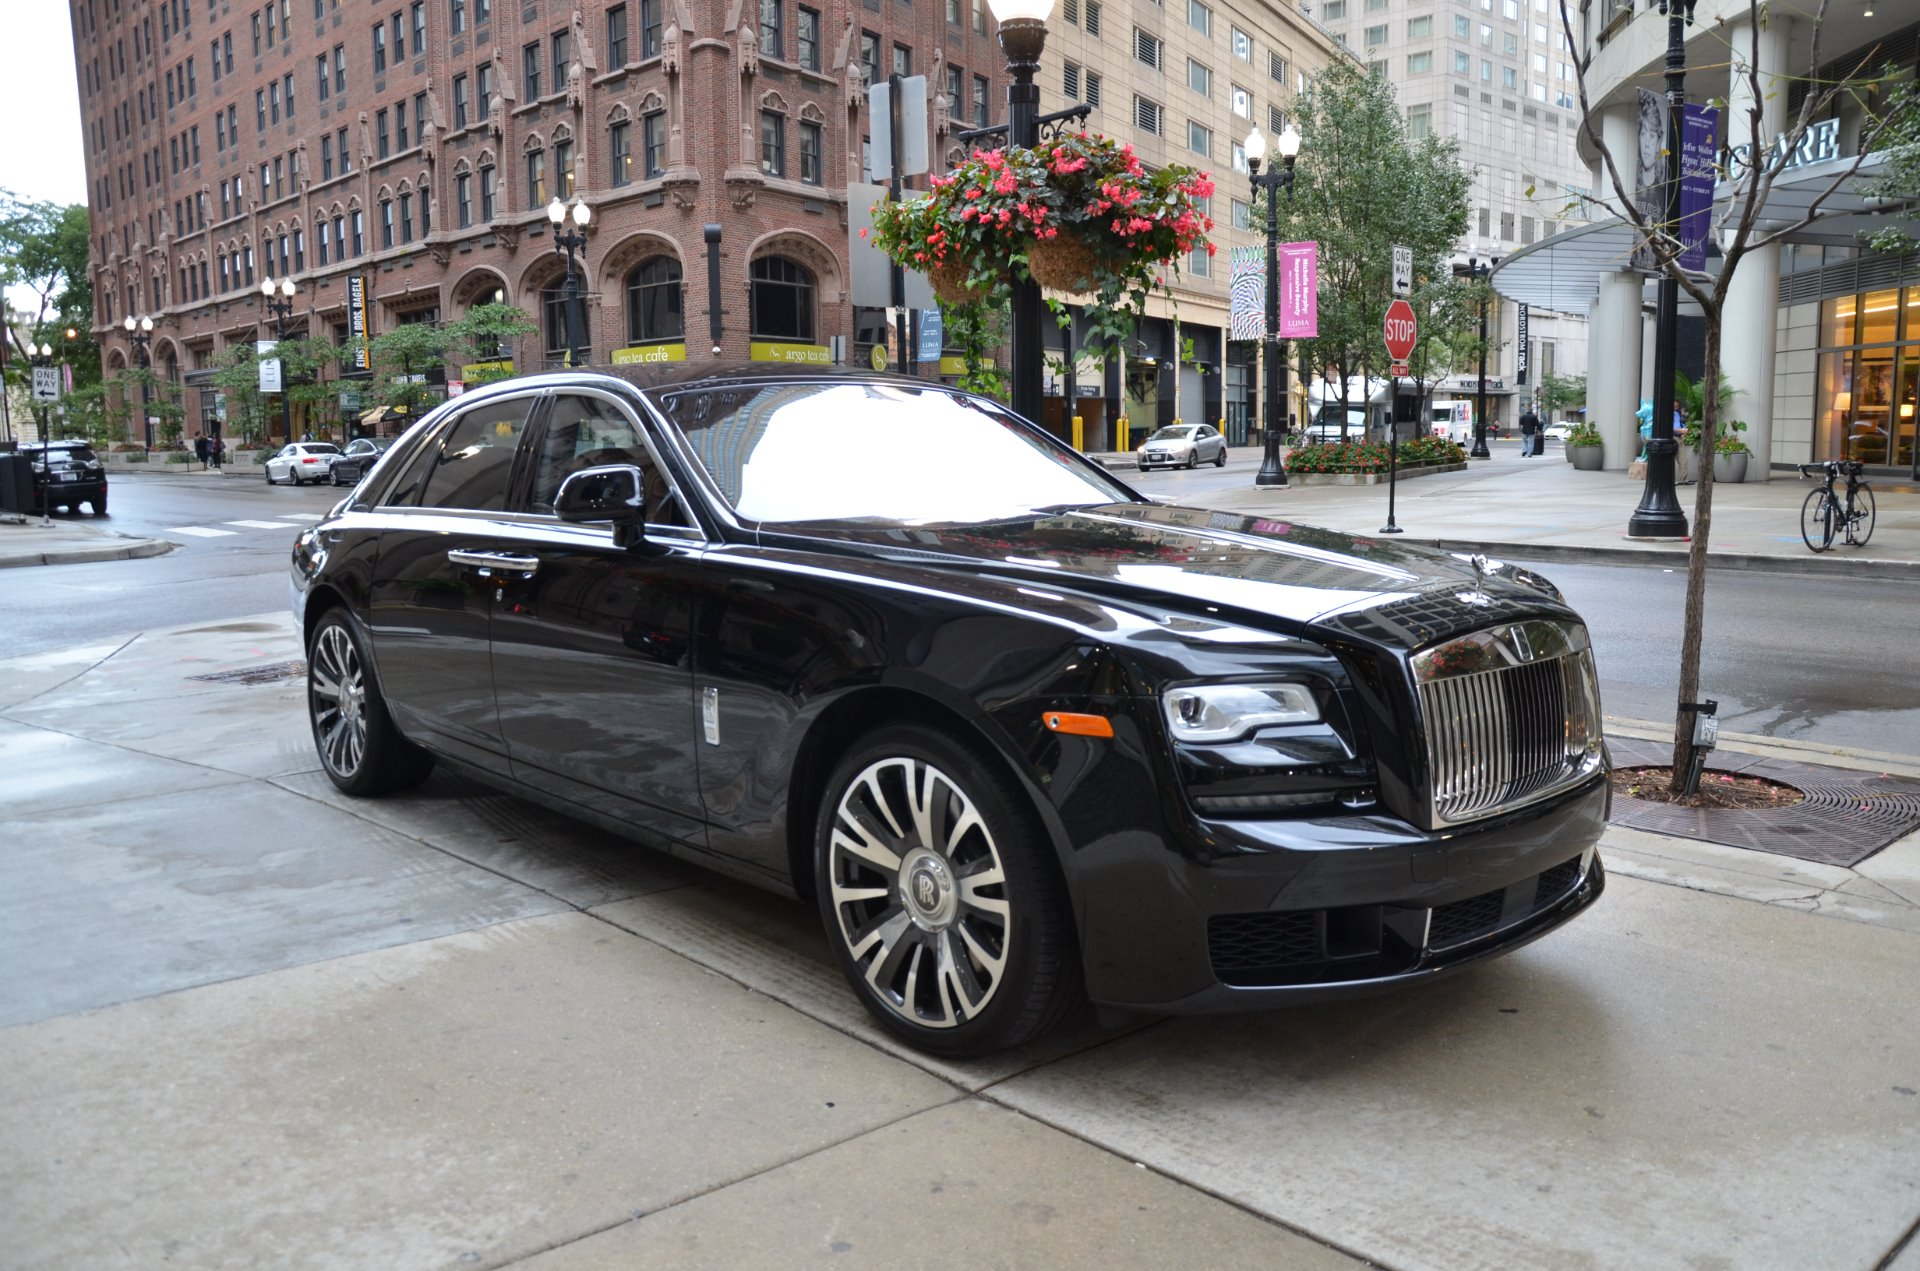 2018 rolls royce ghost stock r439 for sale near chicago. Black Bedroom Furniture Sets. Home Design Ideas